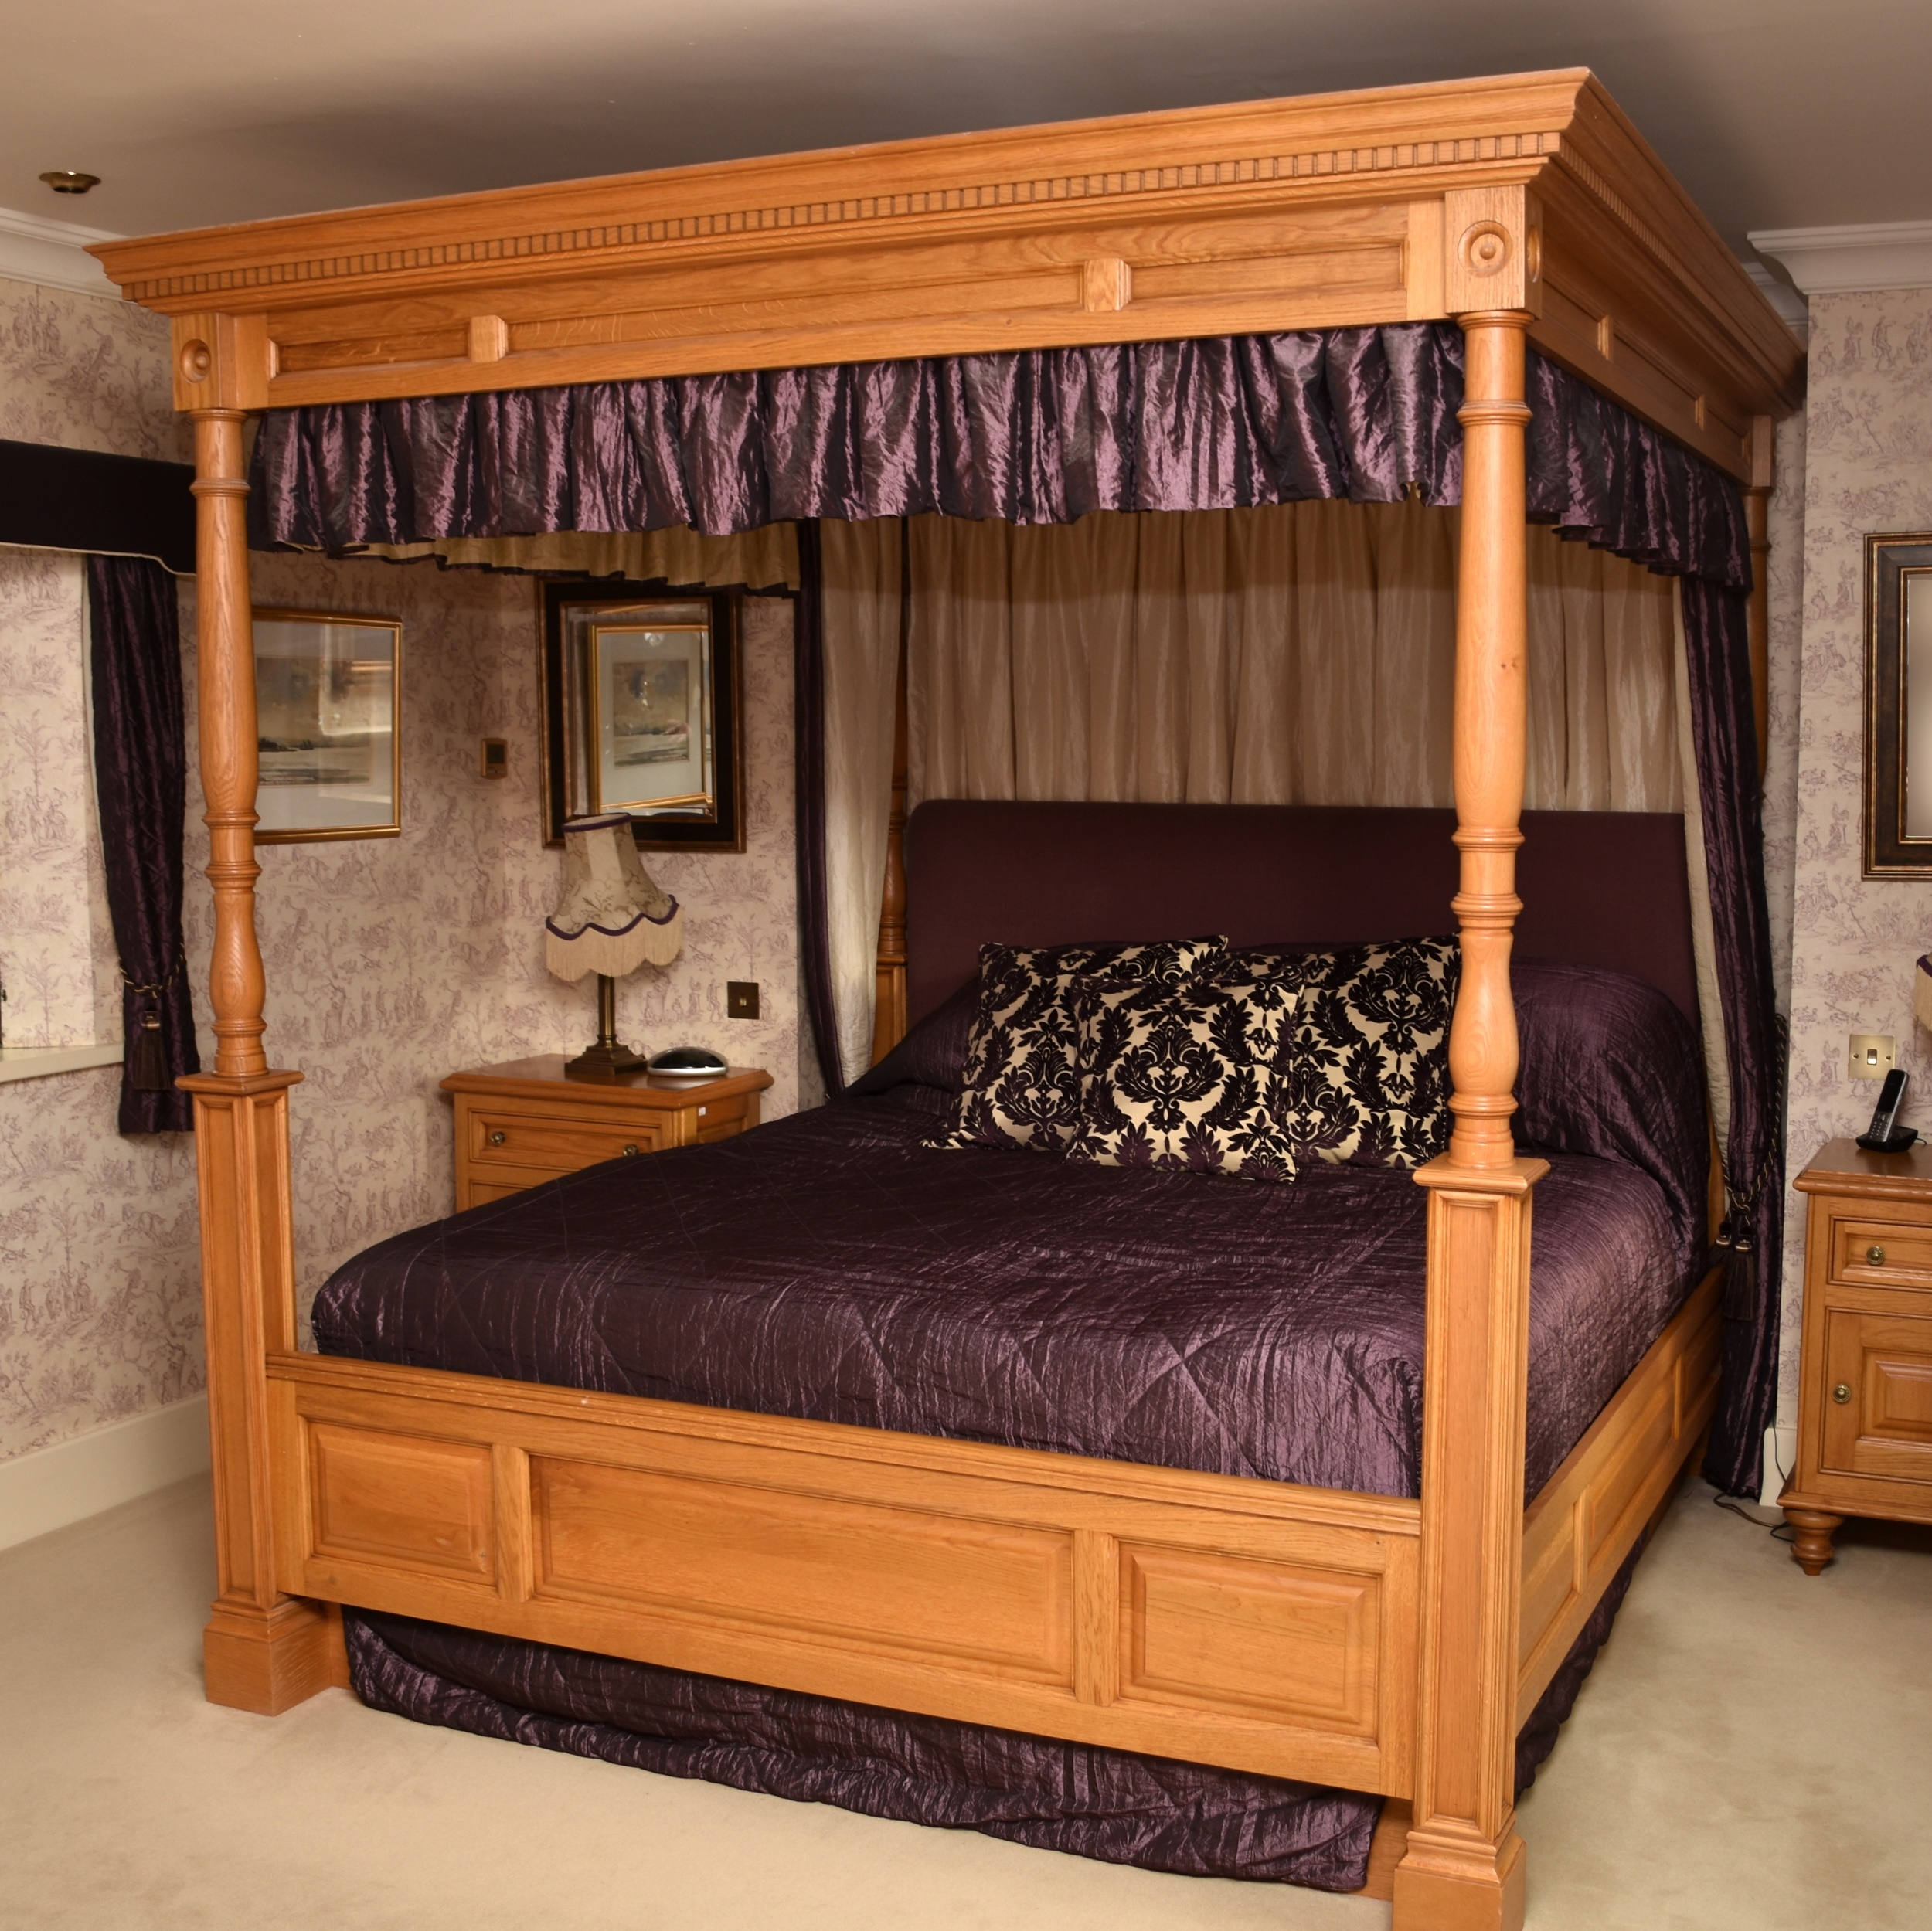 A recent and impressive Clive Christian light oak 'four-poster' bed, in the 18th century style